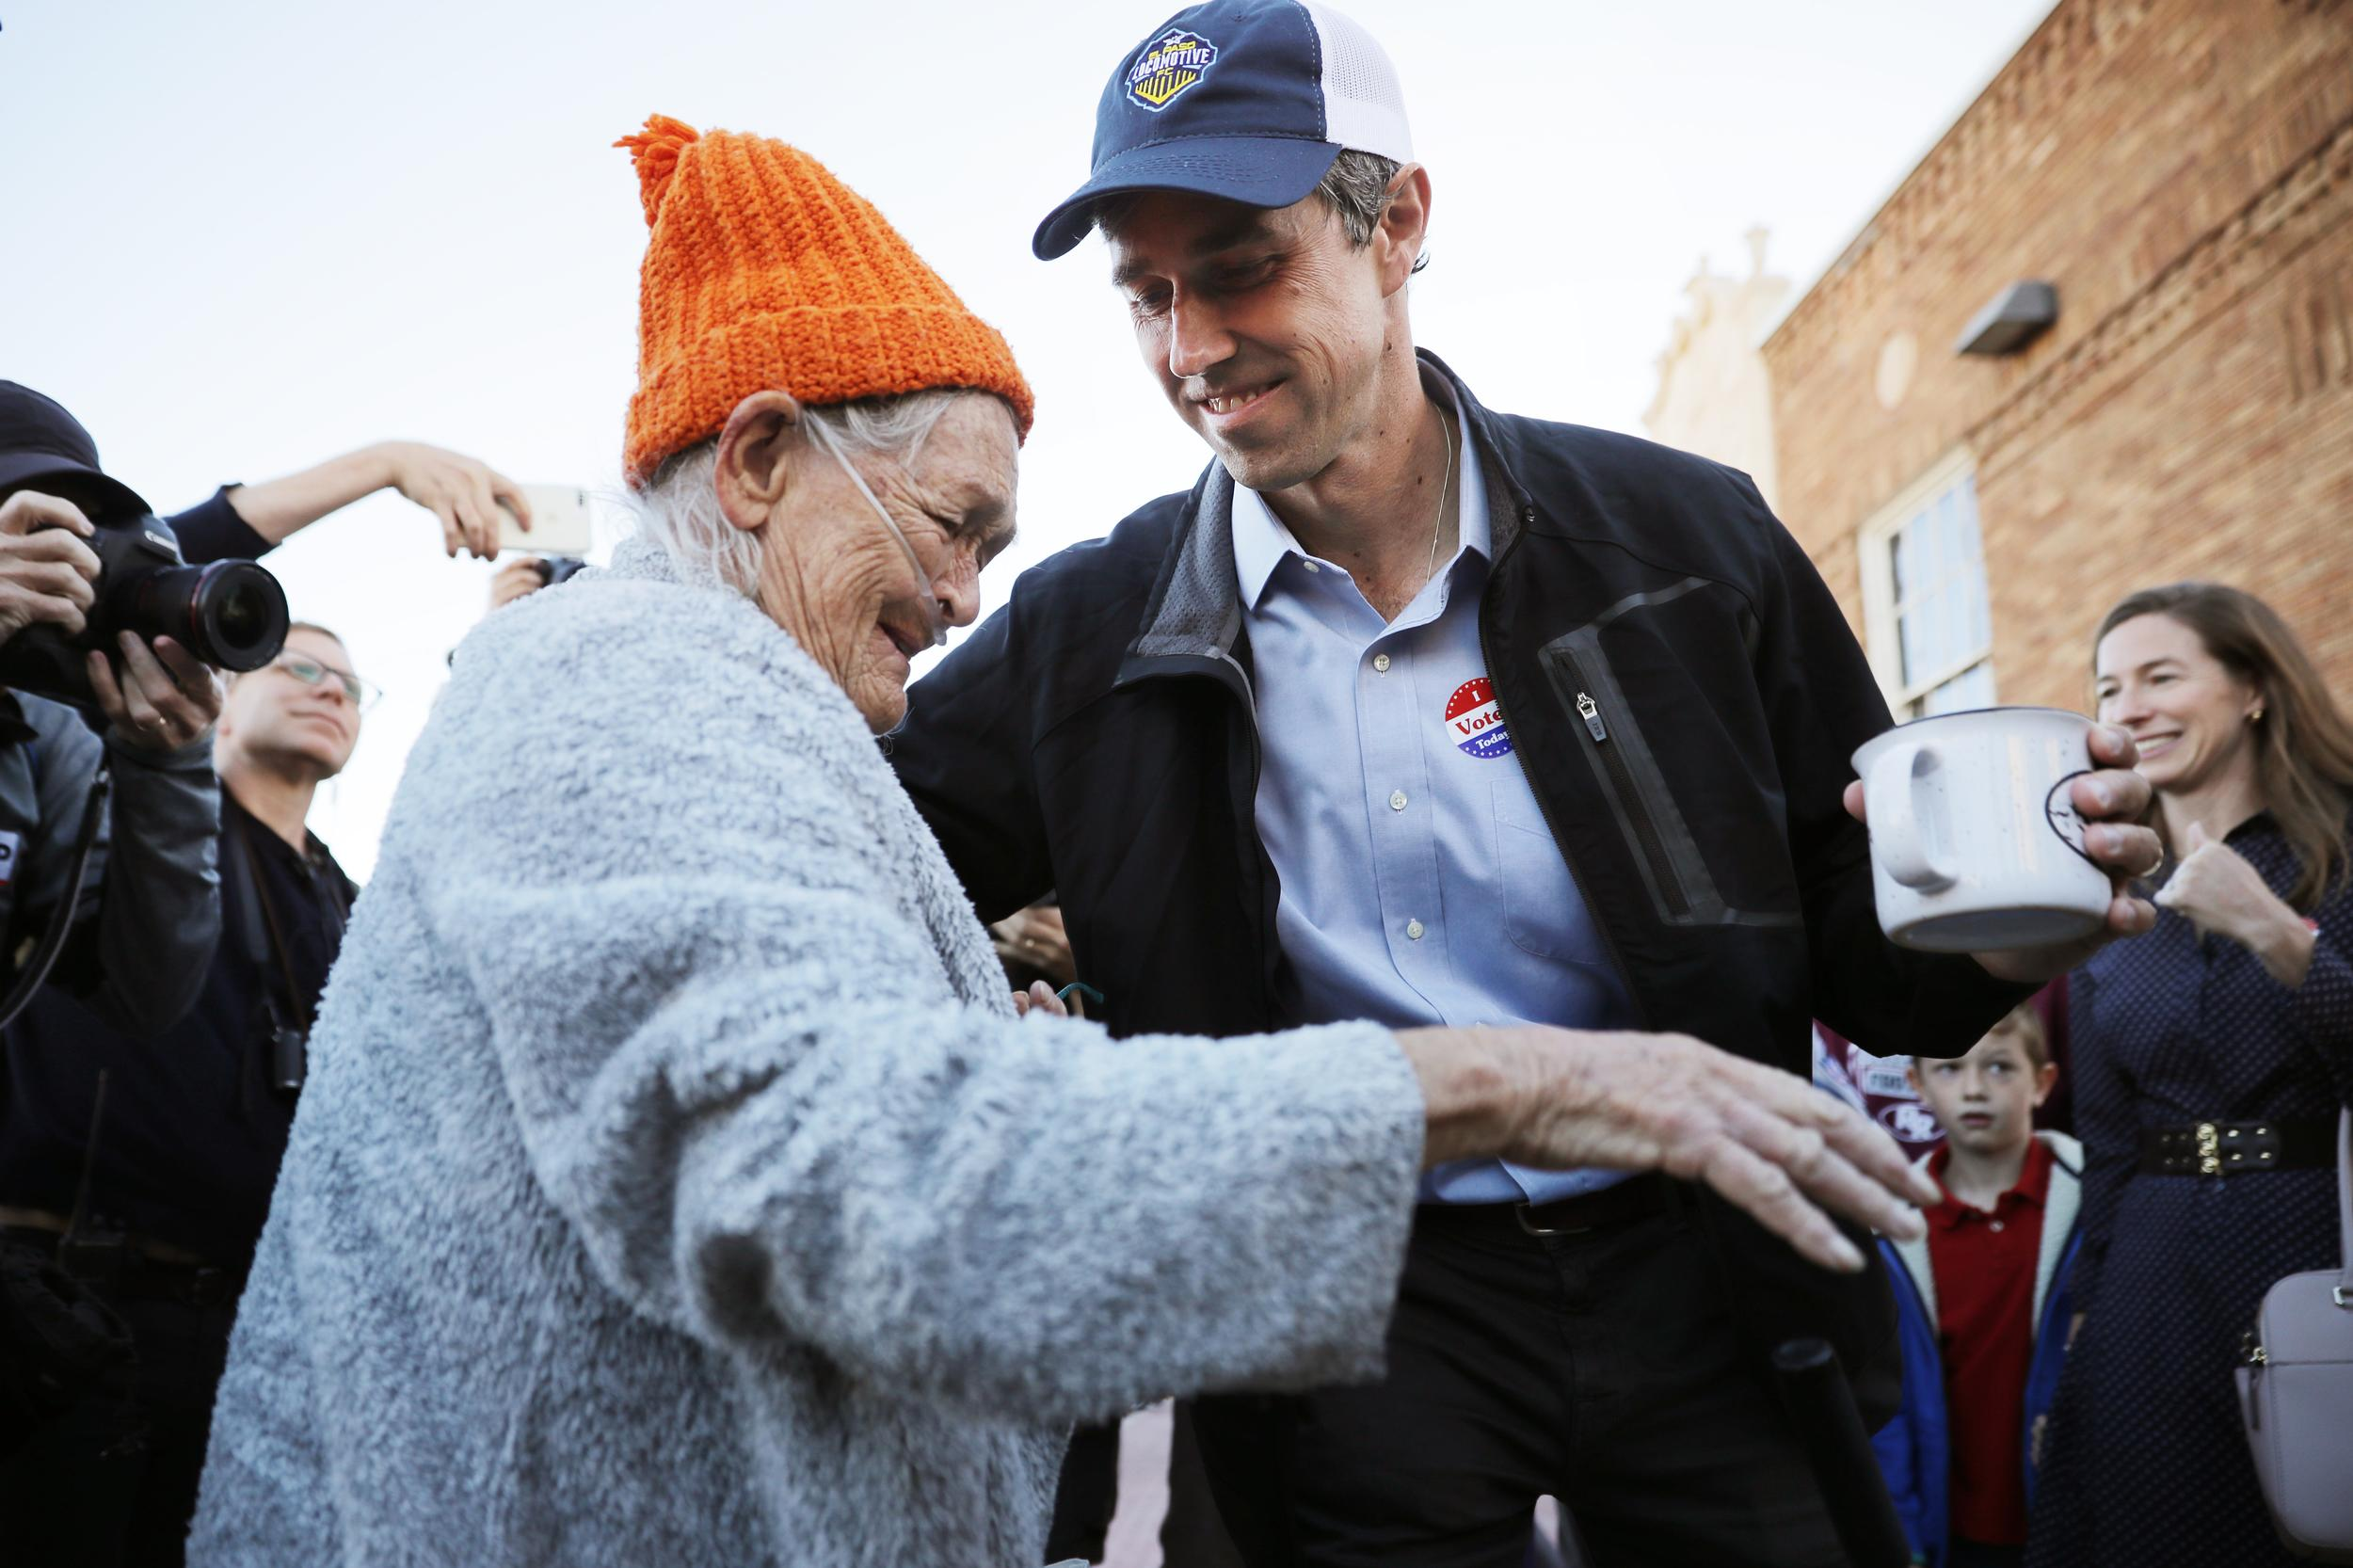 EL PASO, TEXAS - NOVEMBER 06: U.S. Senate candidate Rep. Beto O'Rourke (D-TX) (R) talks with a supporters after he cast his ballot at El Paso Community College-Rio Grande Campus on Election Day November 06, 2018 in El Paso, Texas. In Texas, O'Rourke is in a surprisingly tight contest against incumbent Sen. Ted Cruz (R-TX) for the state's U.S. Senate race. (Photo by Chip Somodevilla/Getty Images)